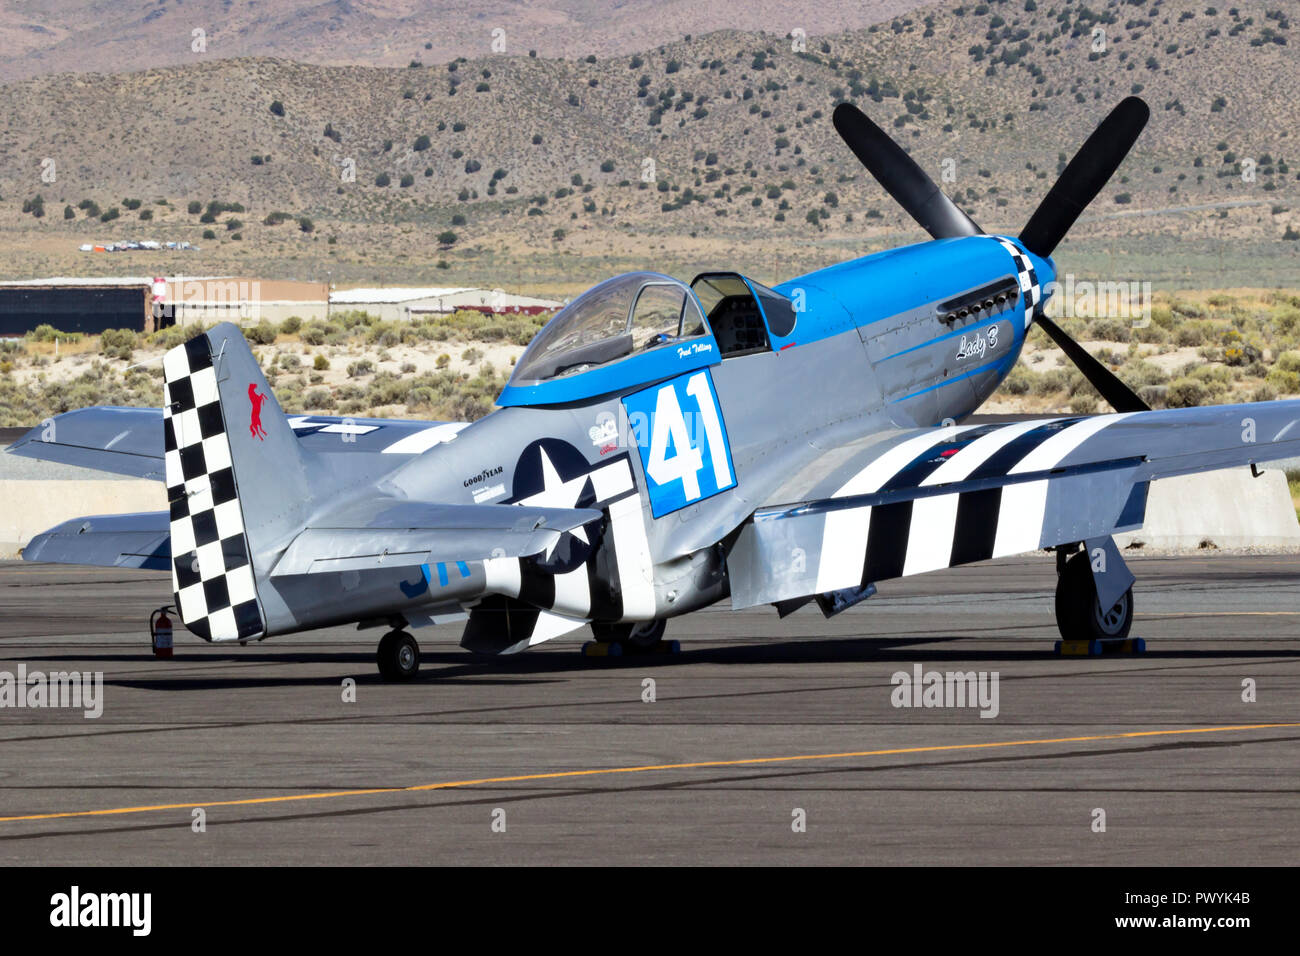 P-51 Mustang and Unlimited Air Racer 'Lady B' sits on the ramp prior to a heat race at the 2018 Reno National Championship Air Races. - Stock Image